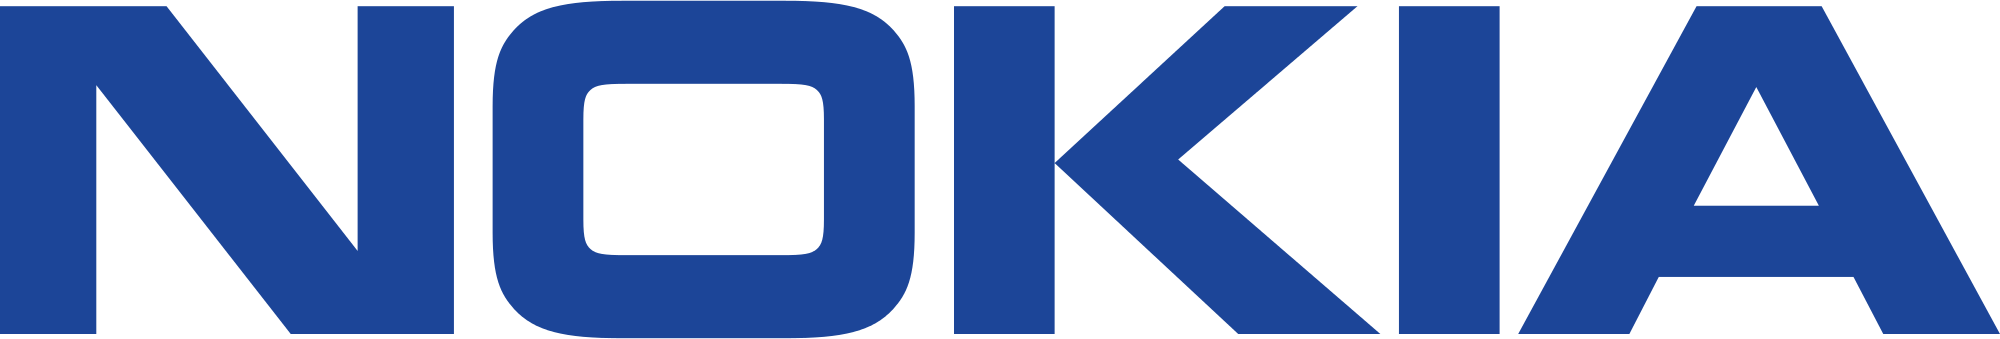 498675 Nokia logo - Automated Wi-Fi Optimization differentiates your customers' experience